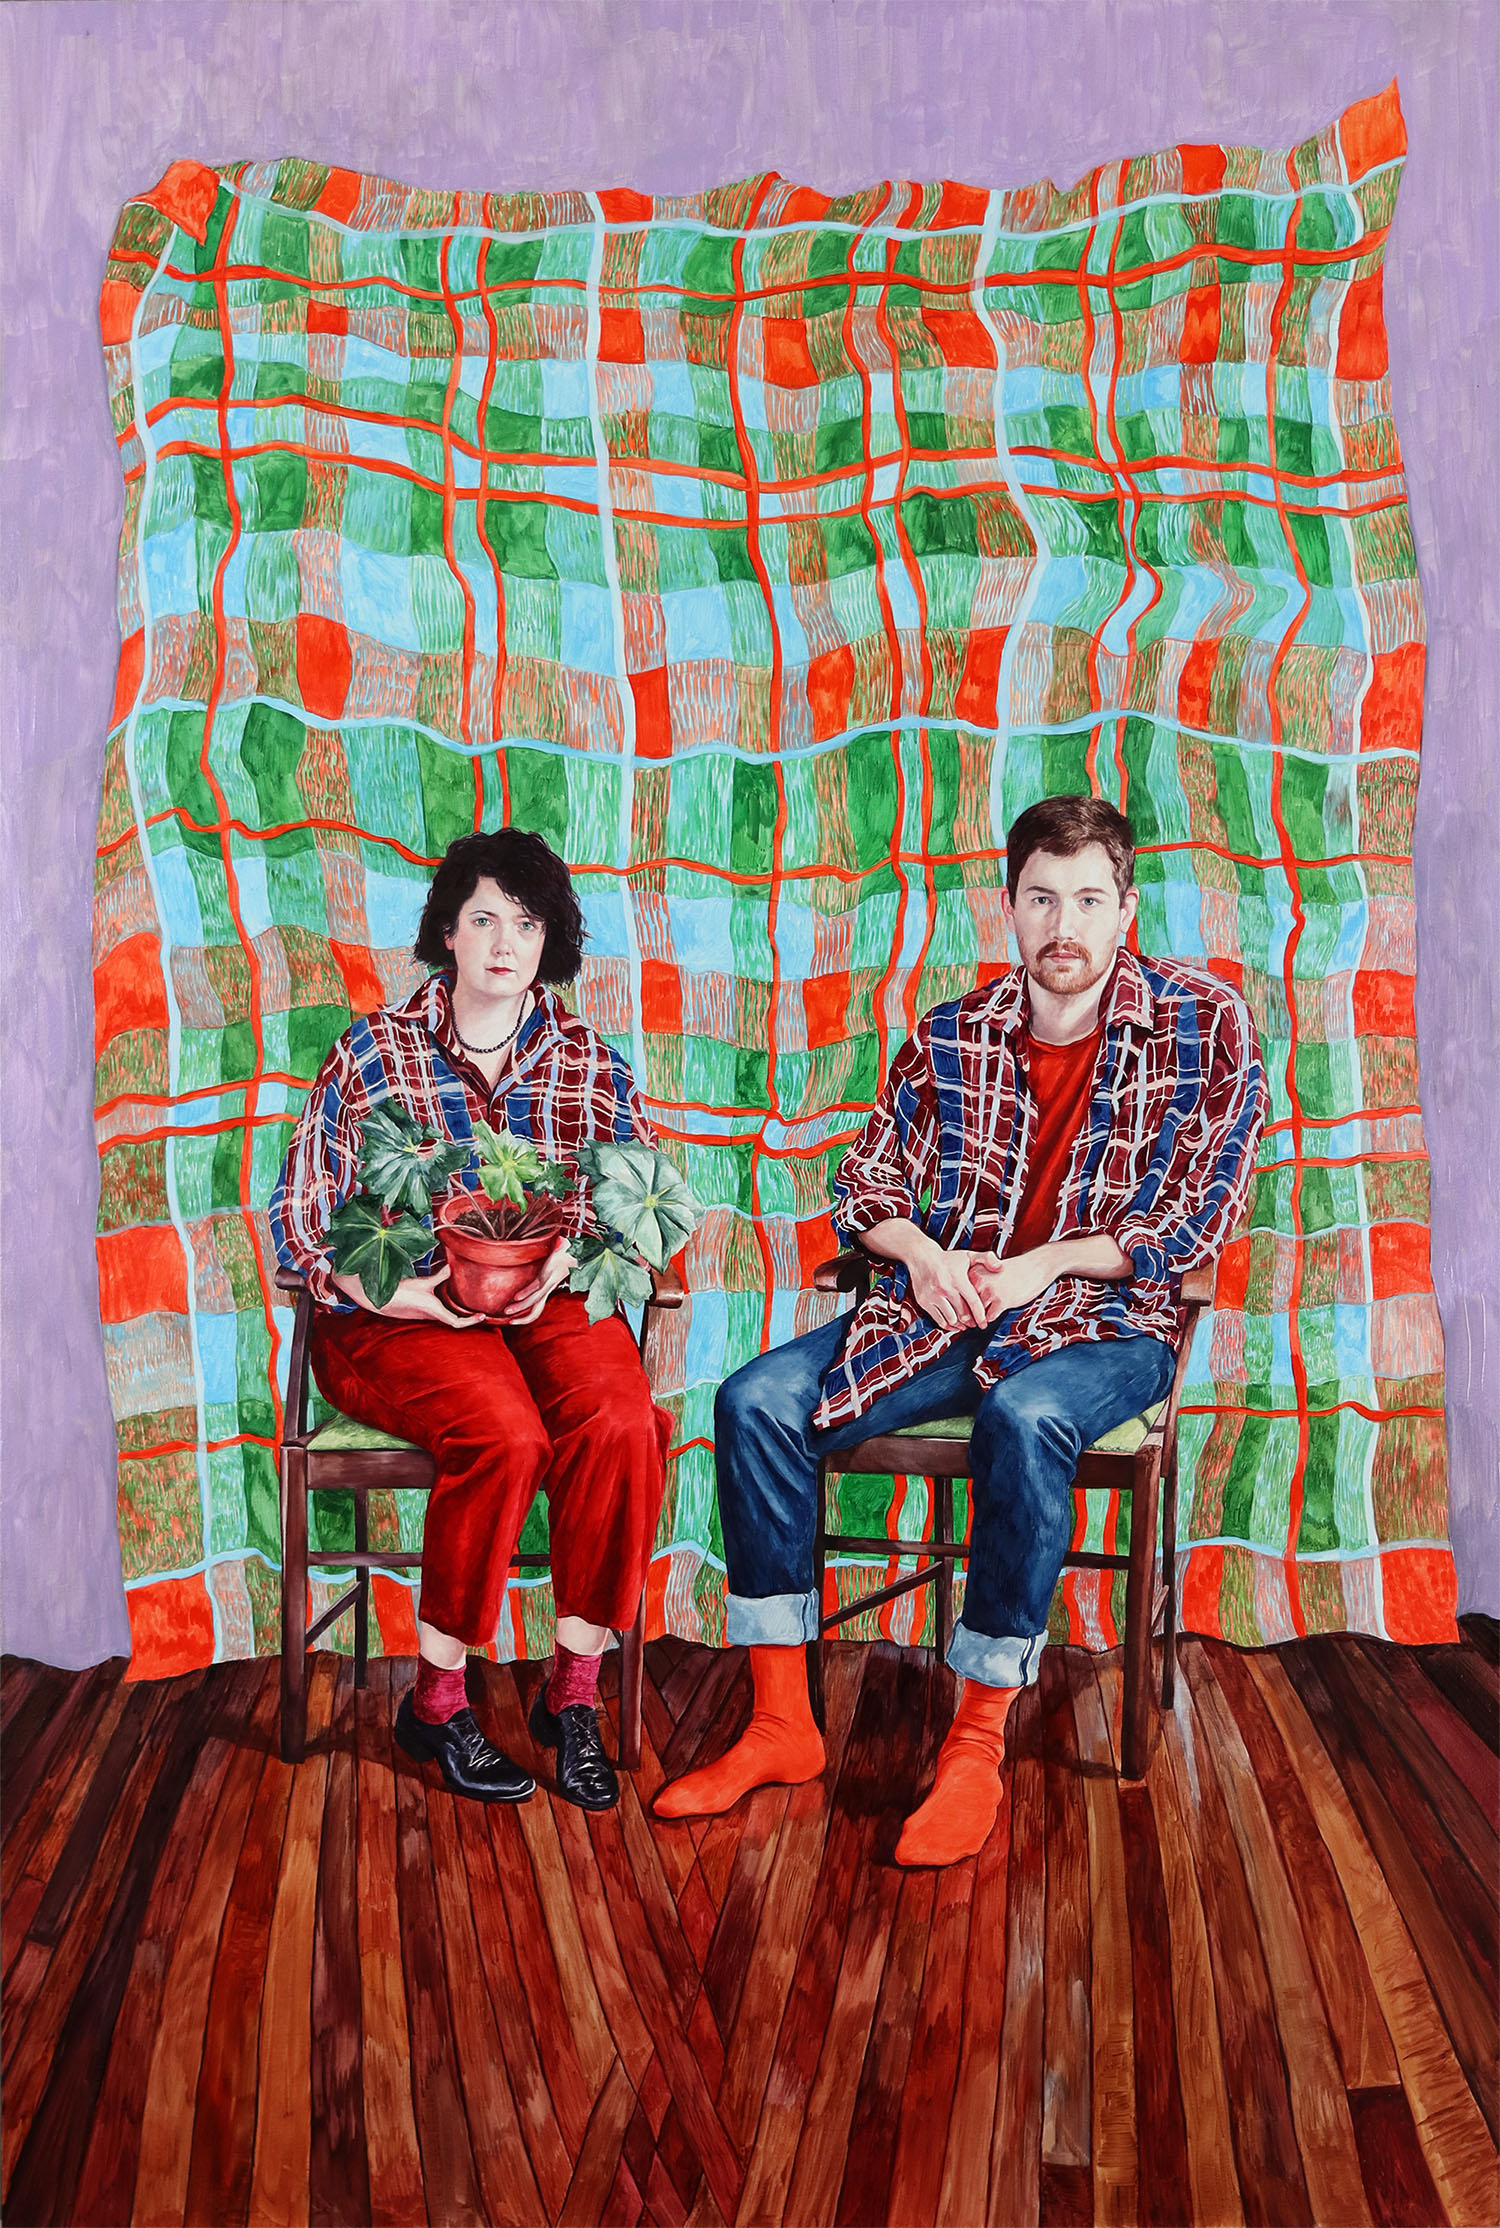 Image credit: Monica Rohan, 'Mon and Mitch', 2021, oil on board, 92.0 x 61.0 cm